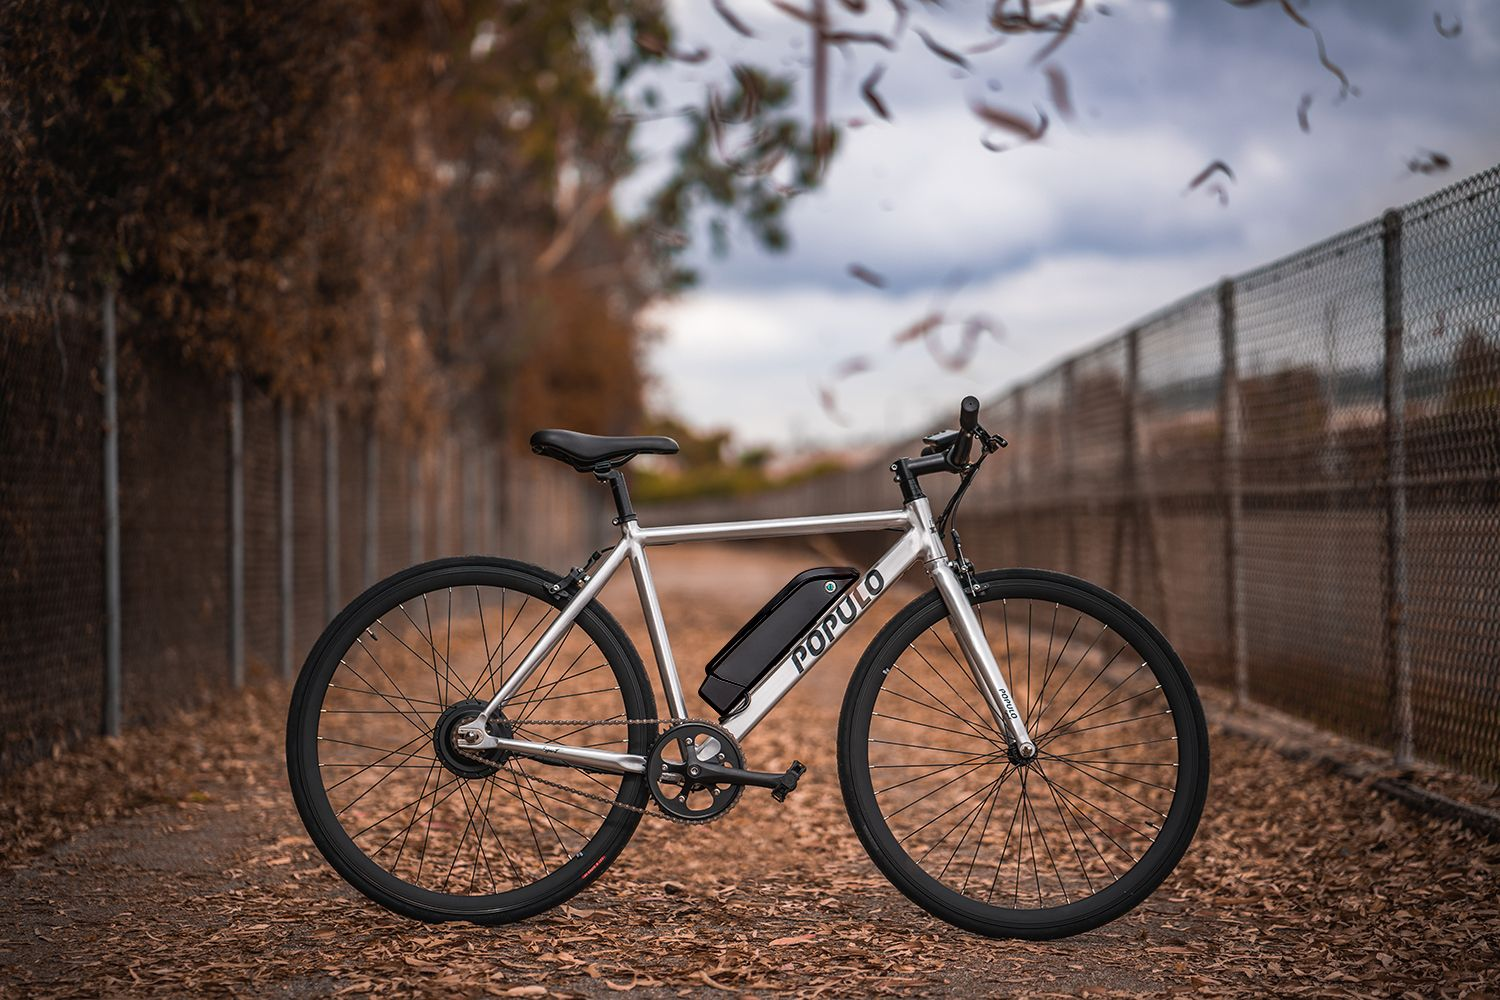 Smash The Commute Without The Sweat The Sport Is The Premier Single Speed E Bike We Designed This Bike With The Quick Handling Of Bike Bicycle Electric Bike